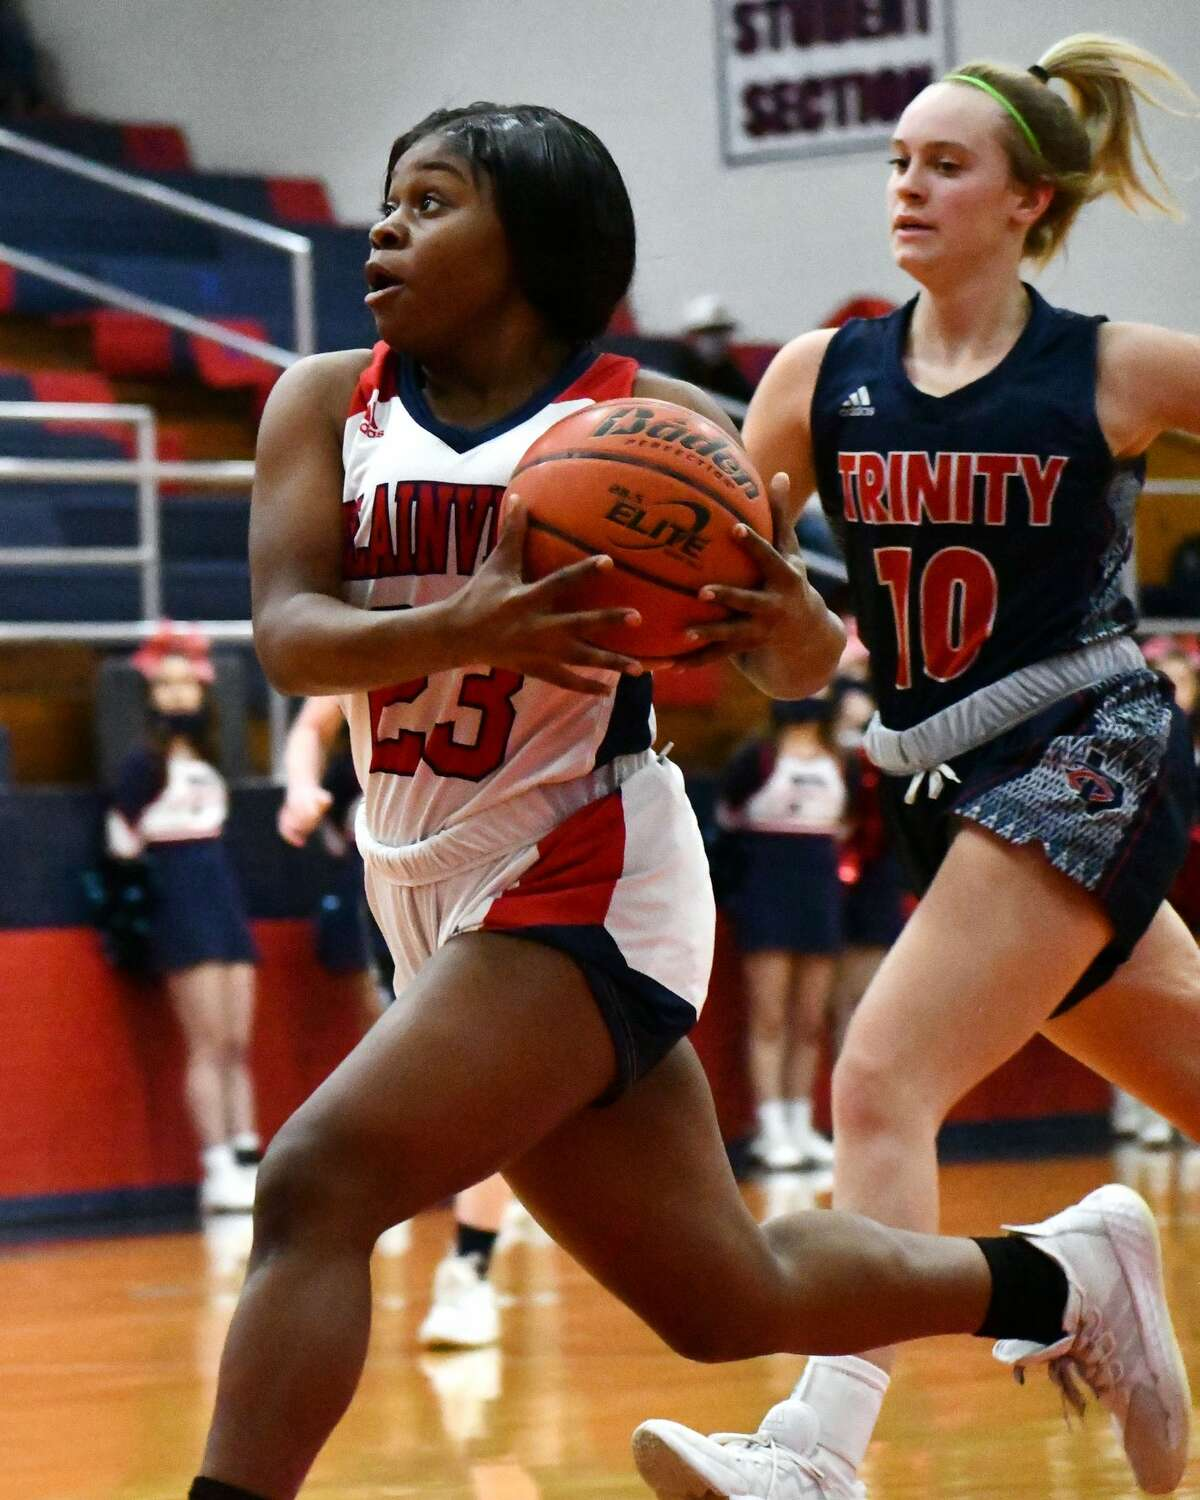 Plainview's Dalazia White goes in for two points during the Lady Bulldogs' 91-35 win over Trinity Christian in the Dog House on Friday.